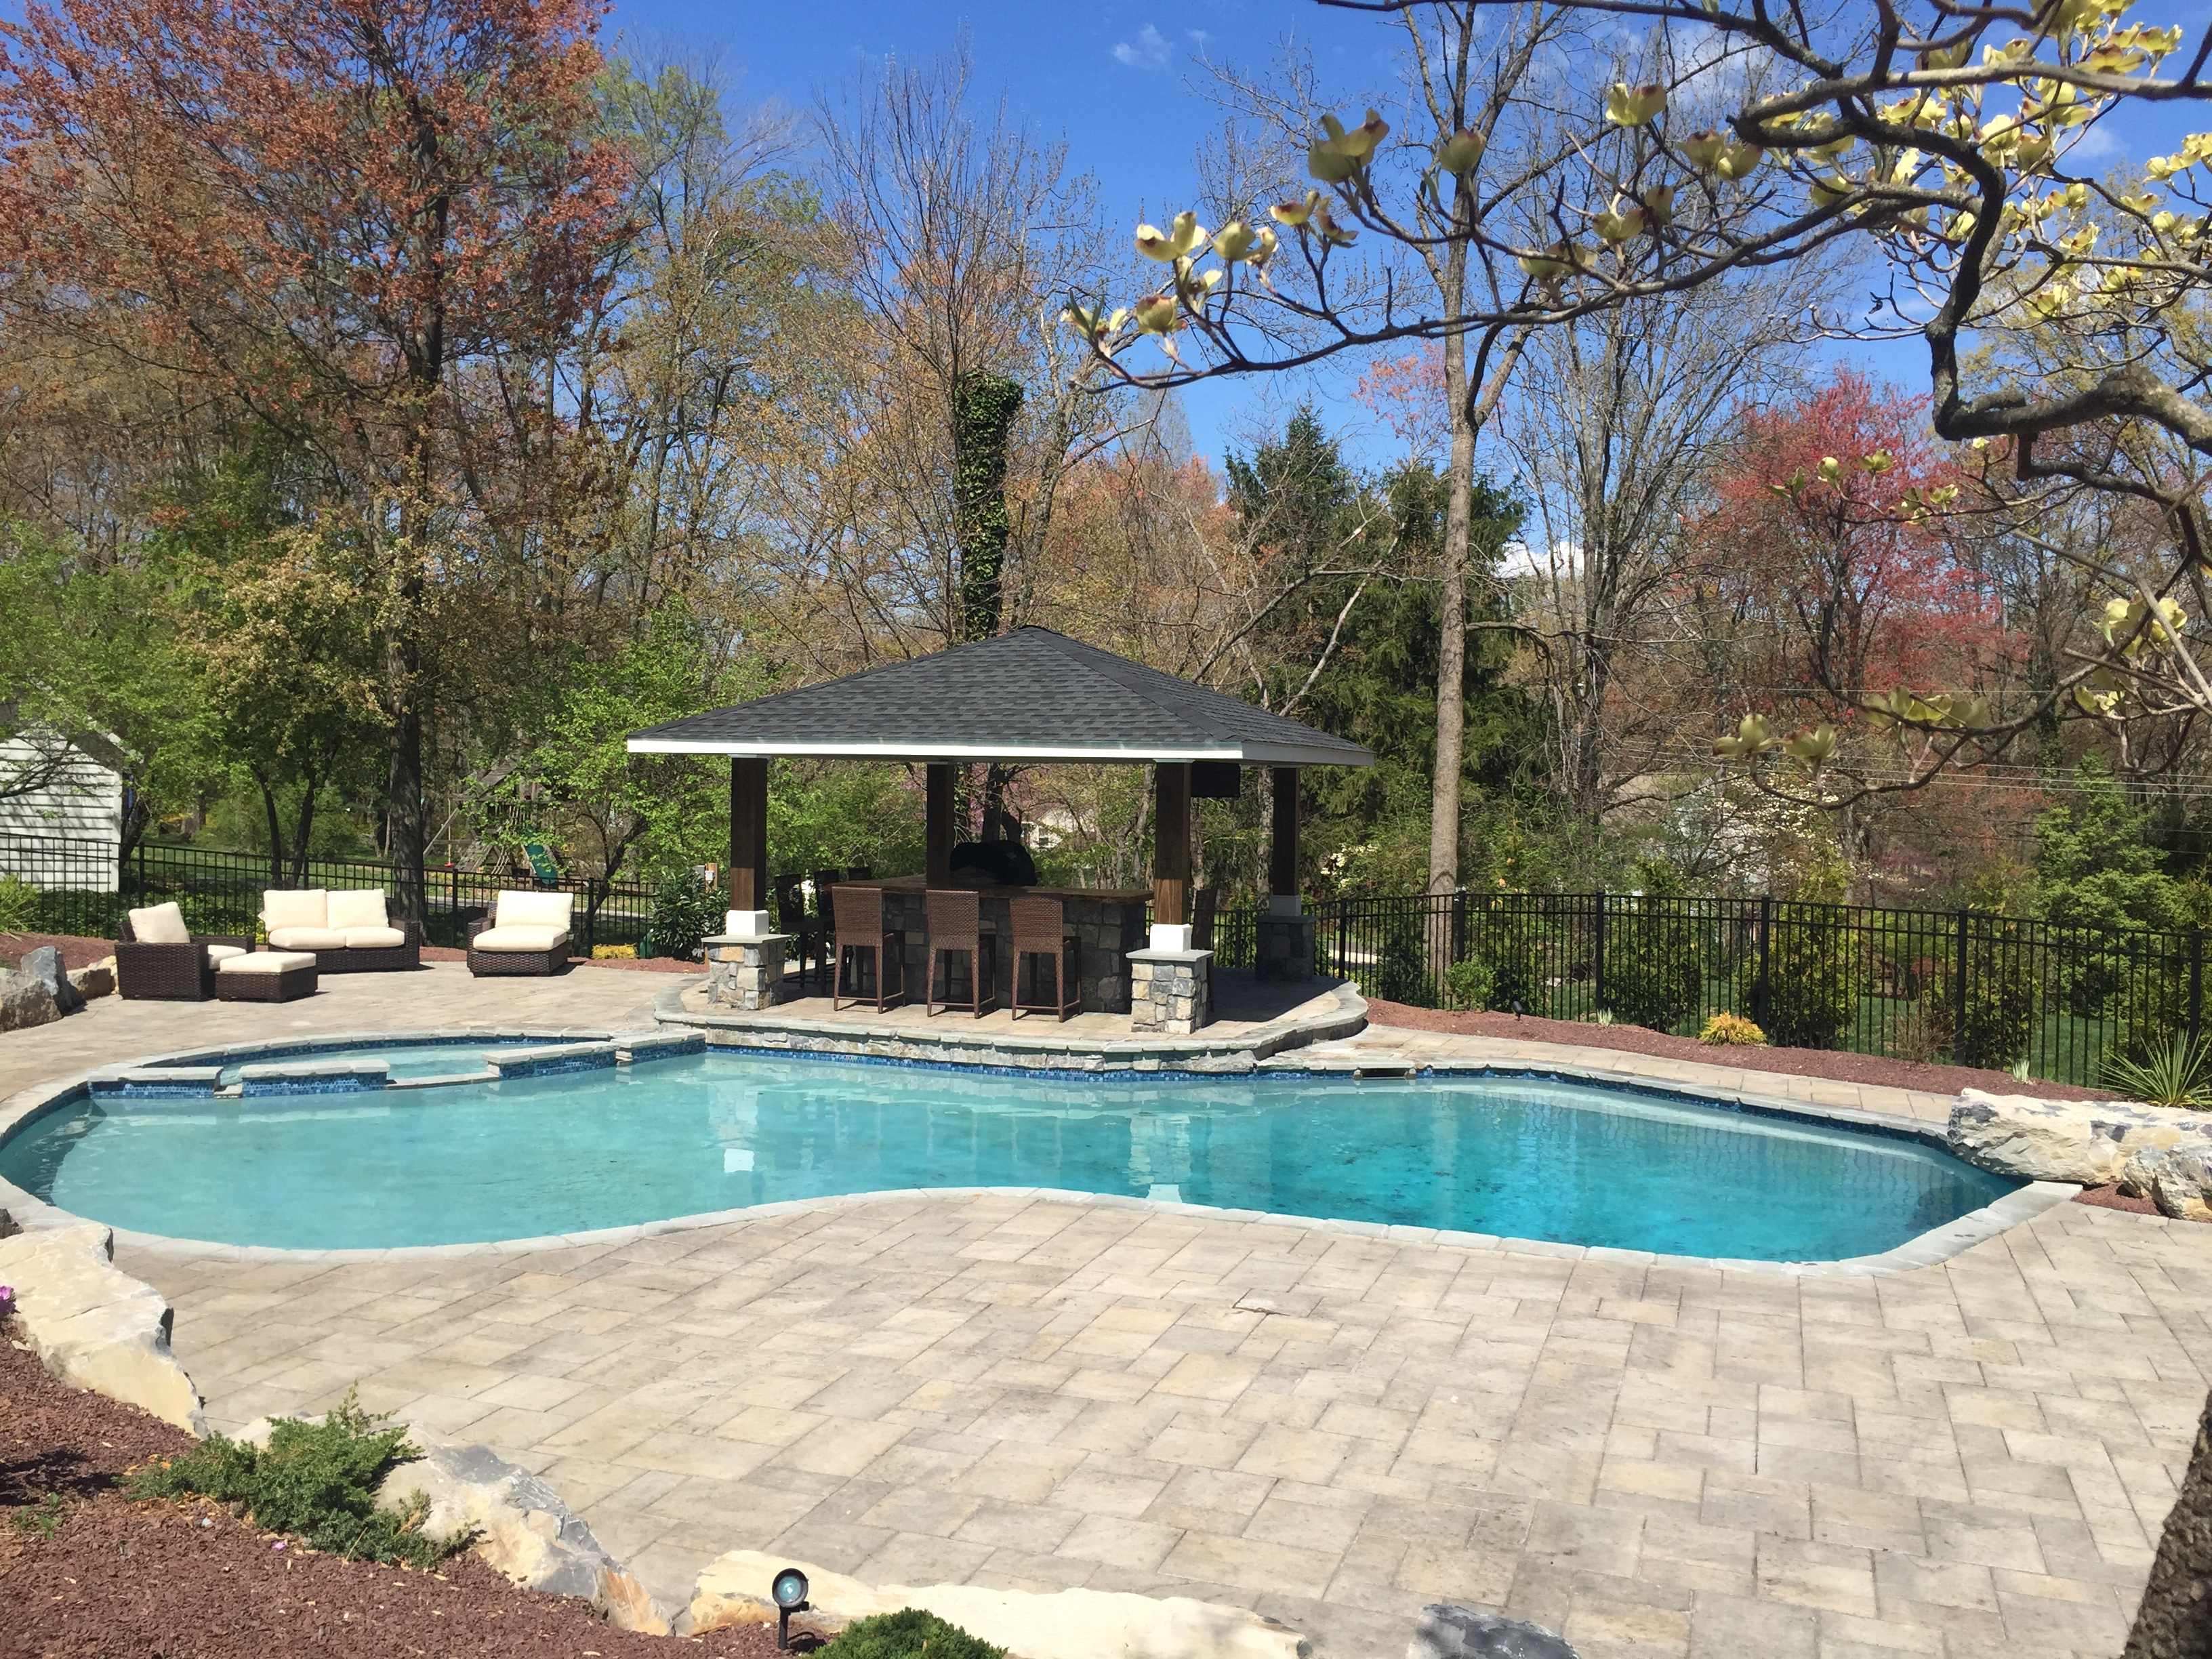 Pool With R Swimming Pool W Paver Pool Deck And Gazebo Garden Patios Inc